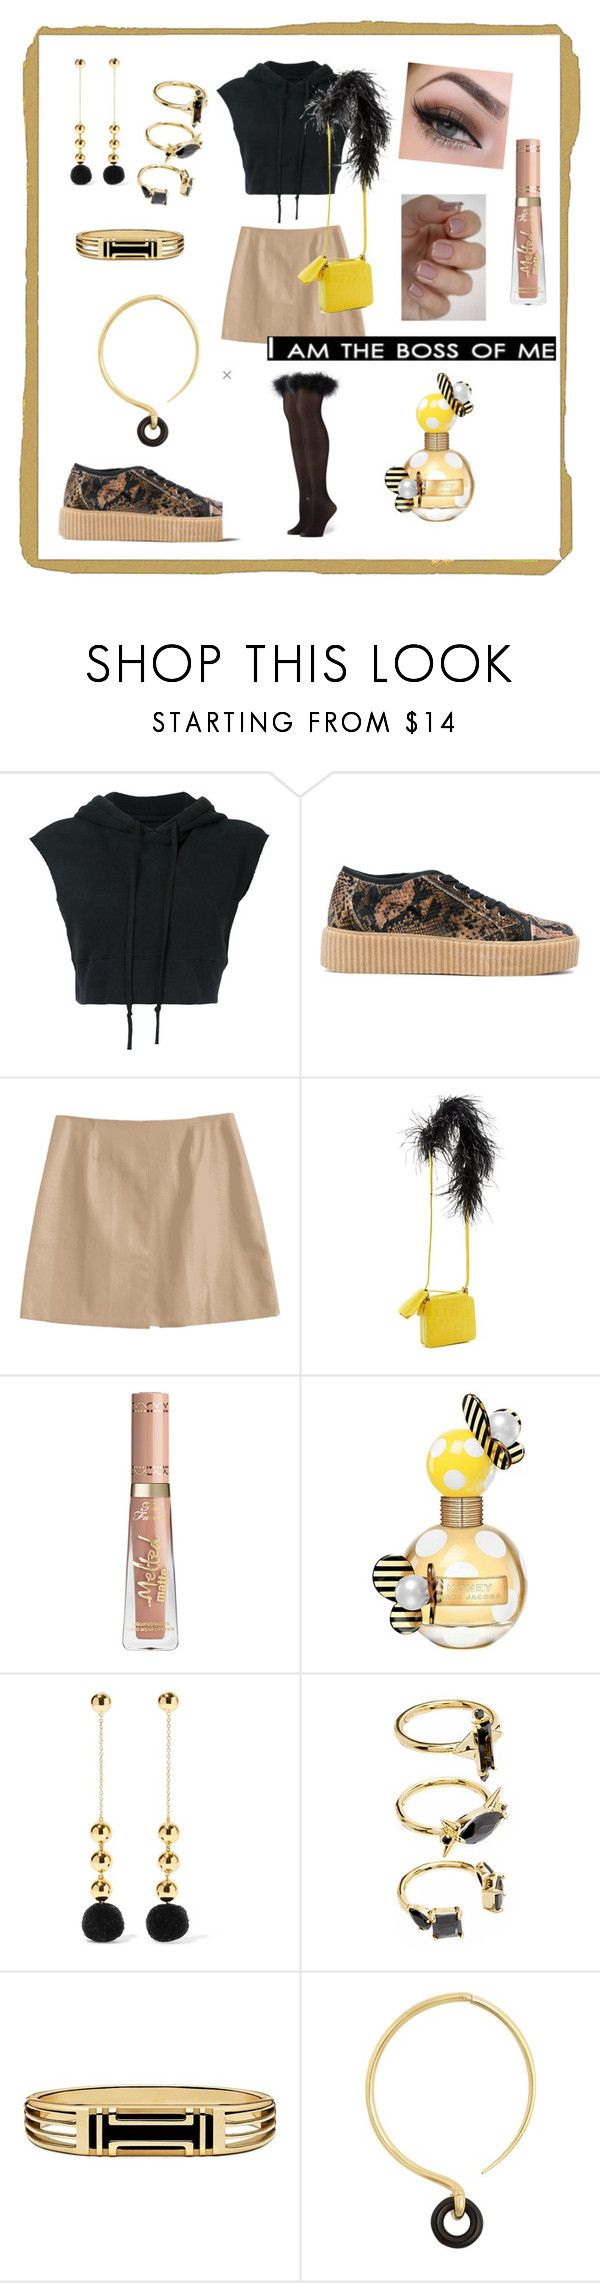 """Trending Trainers"" by gigiglow ❤ liked on Polyvore featuring Greg Lauren, MM6 Maison Margiela, Marques'Almeida, Marc Jacobs, Noir Jewelry, Tory Burch and Charlotte Chesnais"